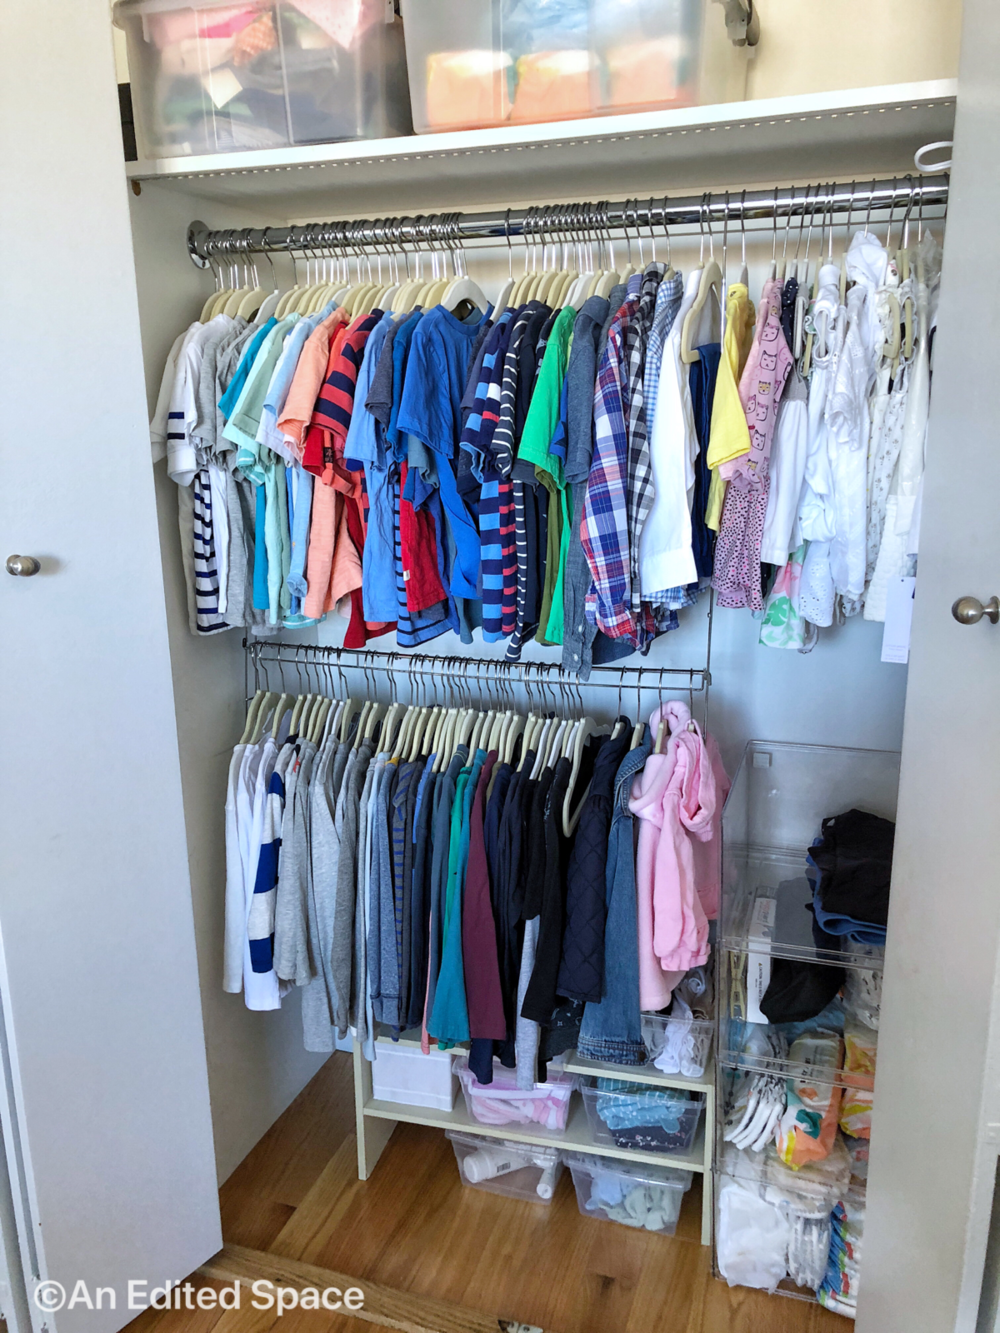 Click  here  for details on items pictured.